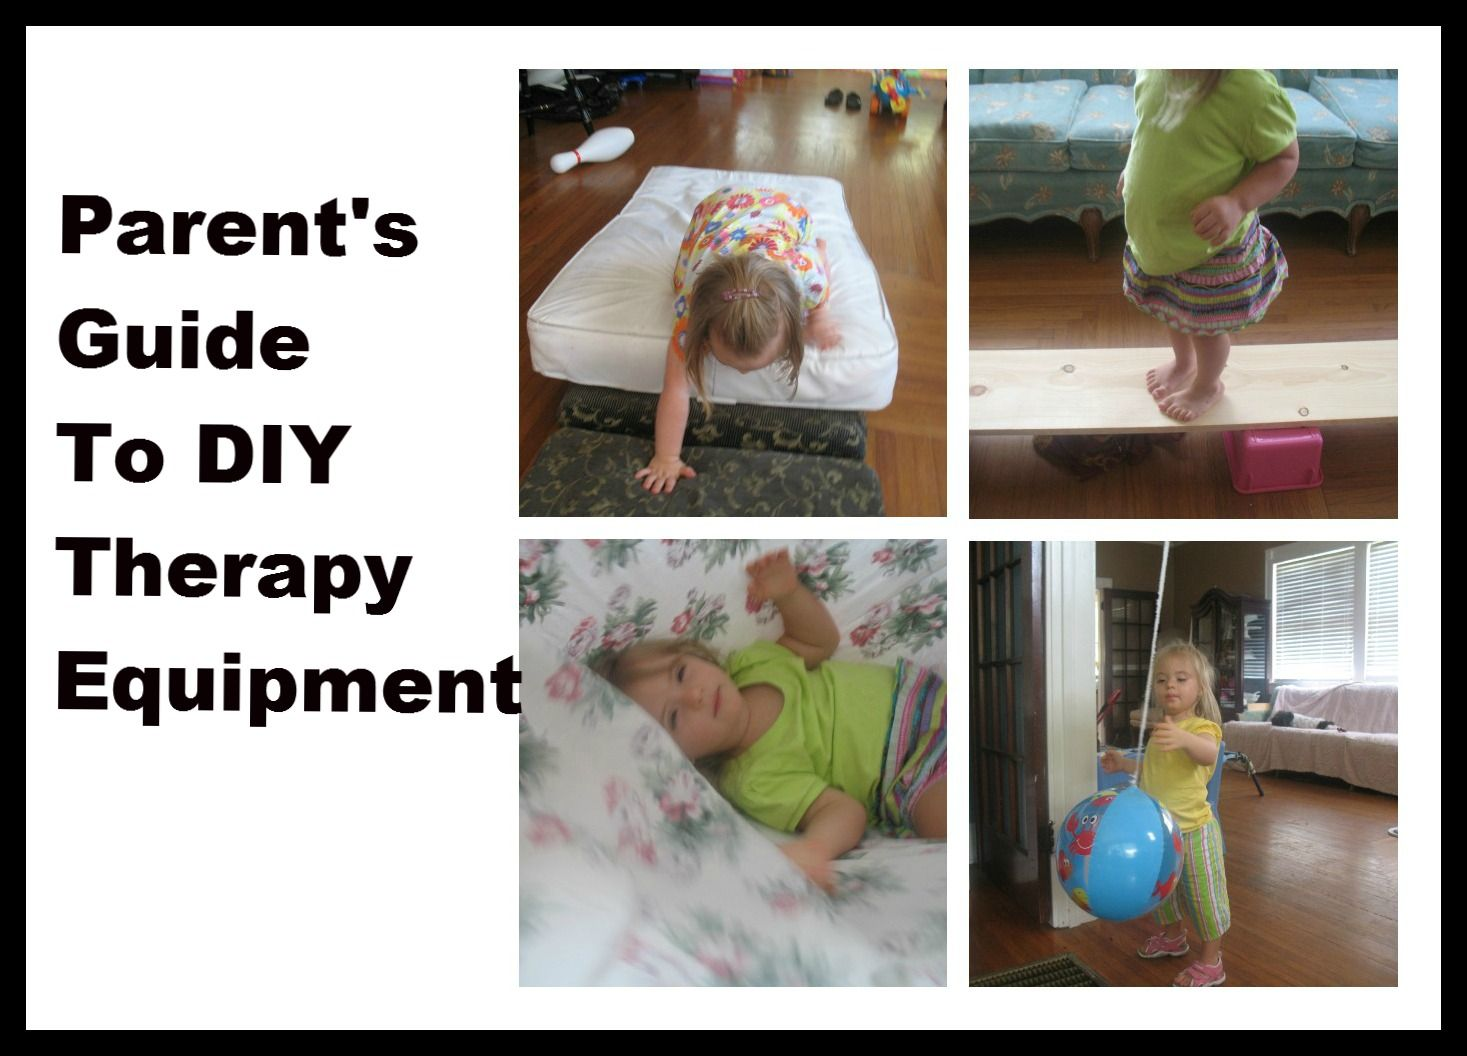 Parent's Guide To DIY Therapy Equipment  --  We Can Do All Things